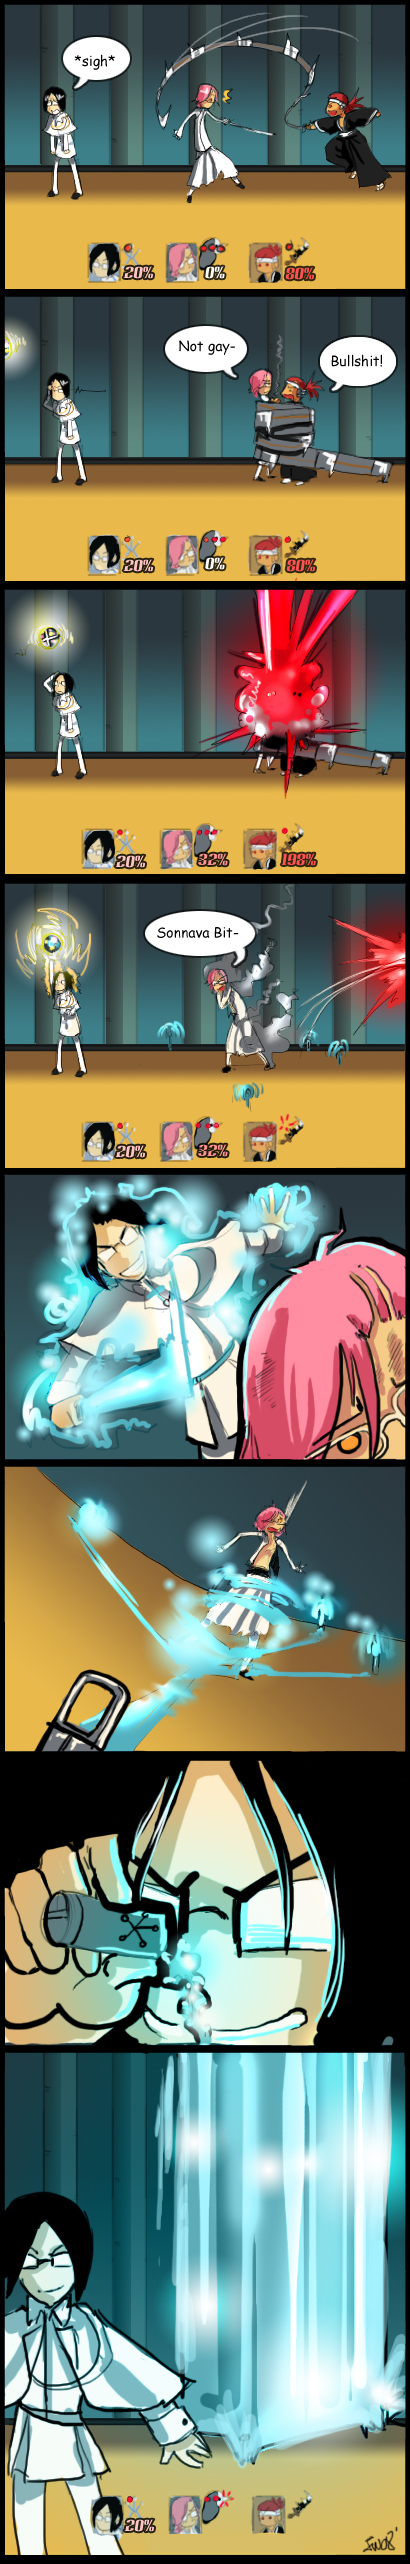 Arrancar Antics - 10 SSBB'B' by oneoftwo